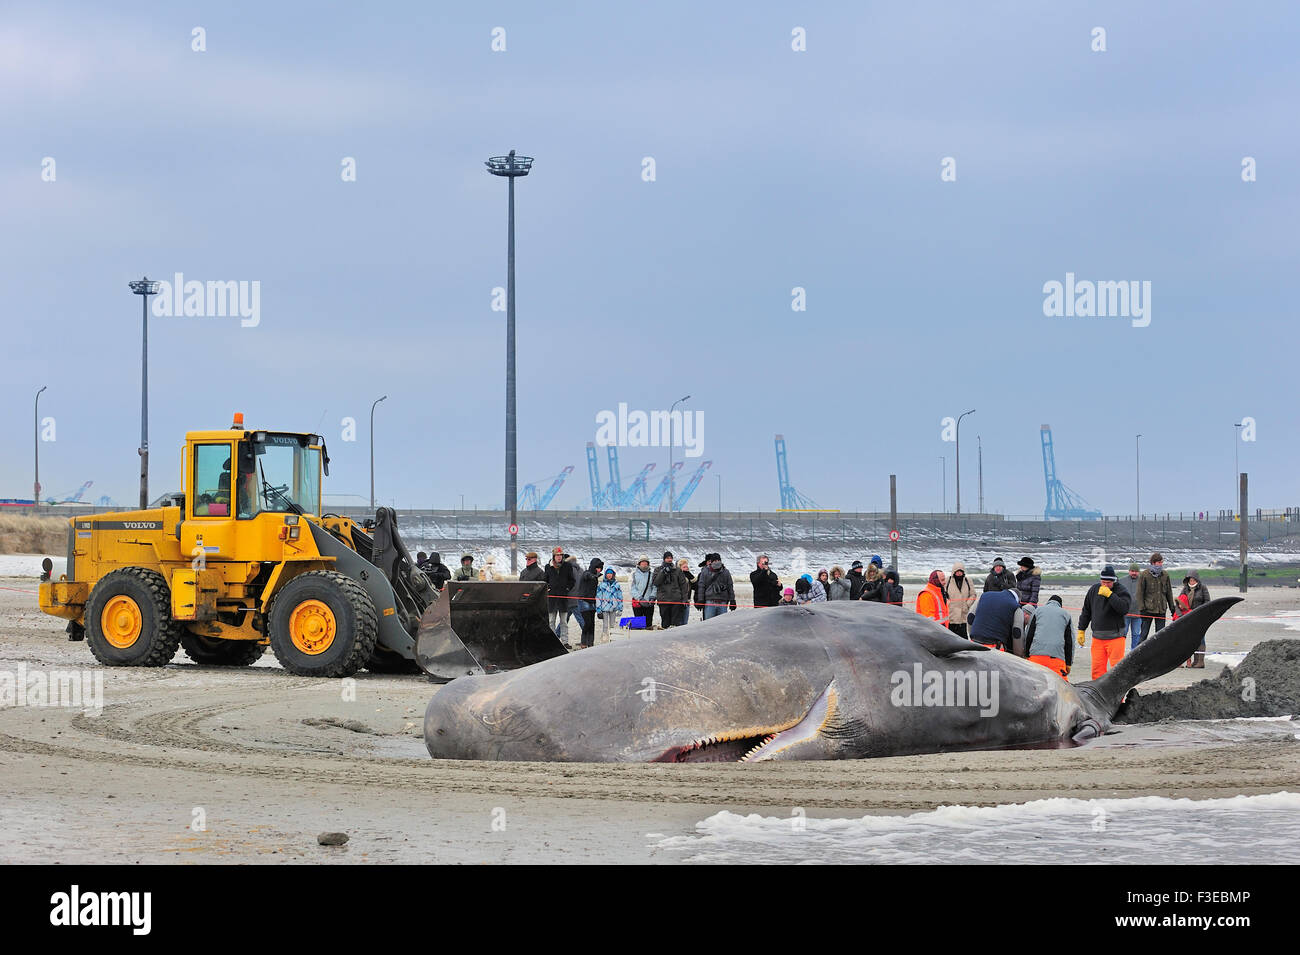 Stranded sperm whale (Physeter macrocephalus) on beach at Knokke, Belgium - Stock Image